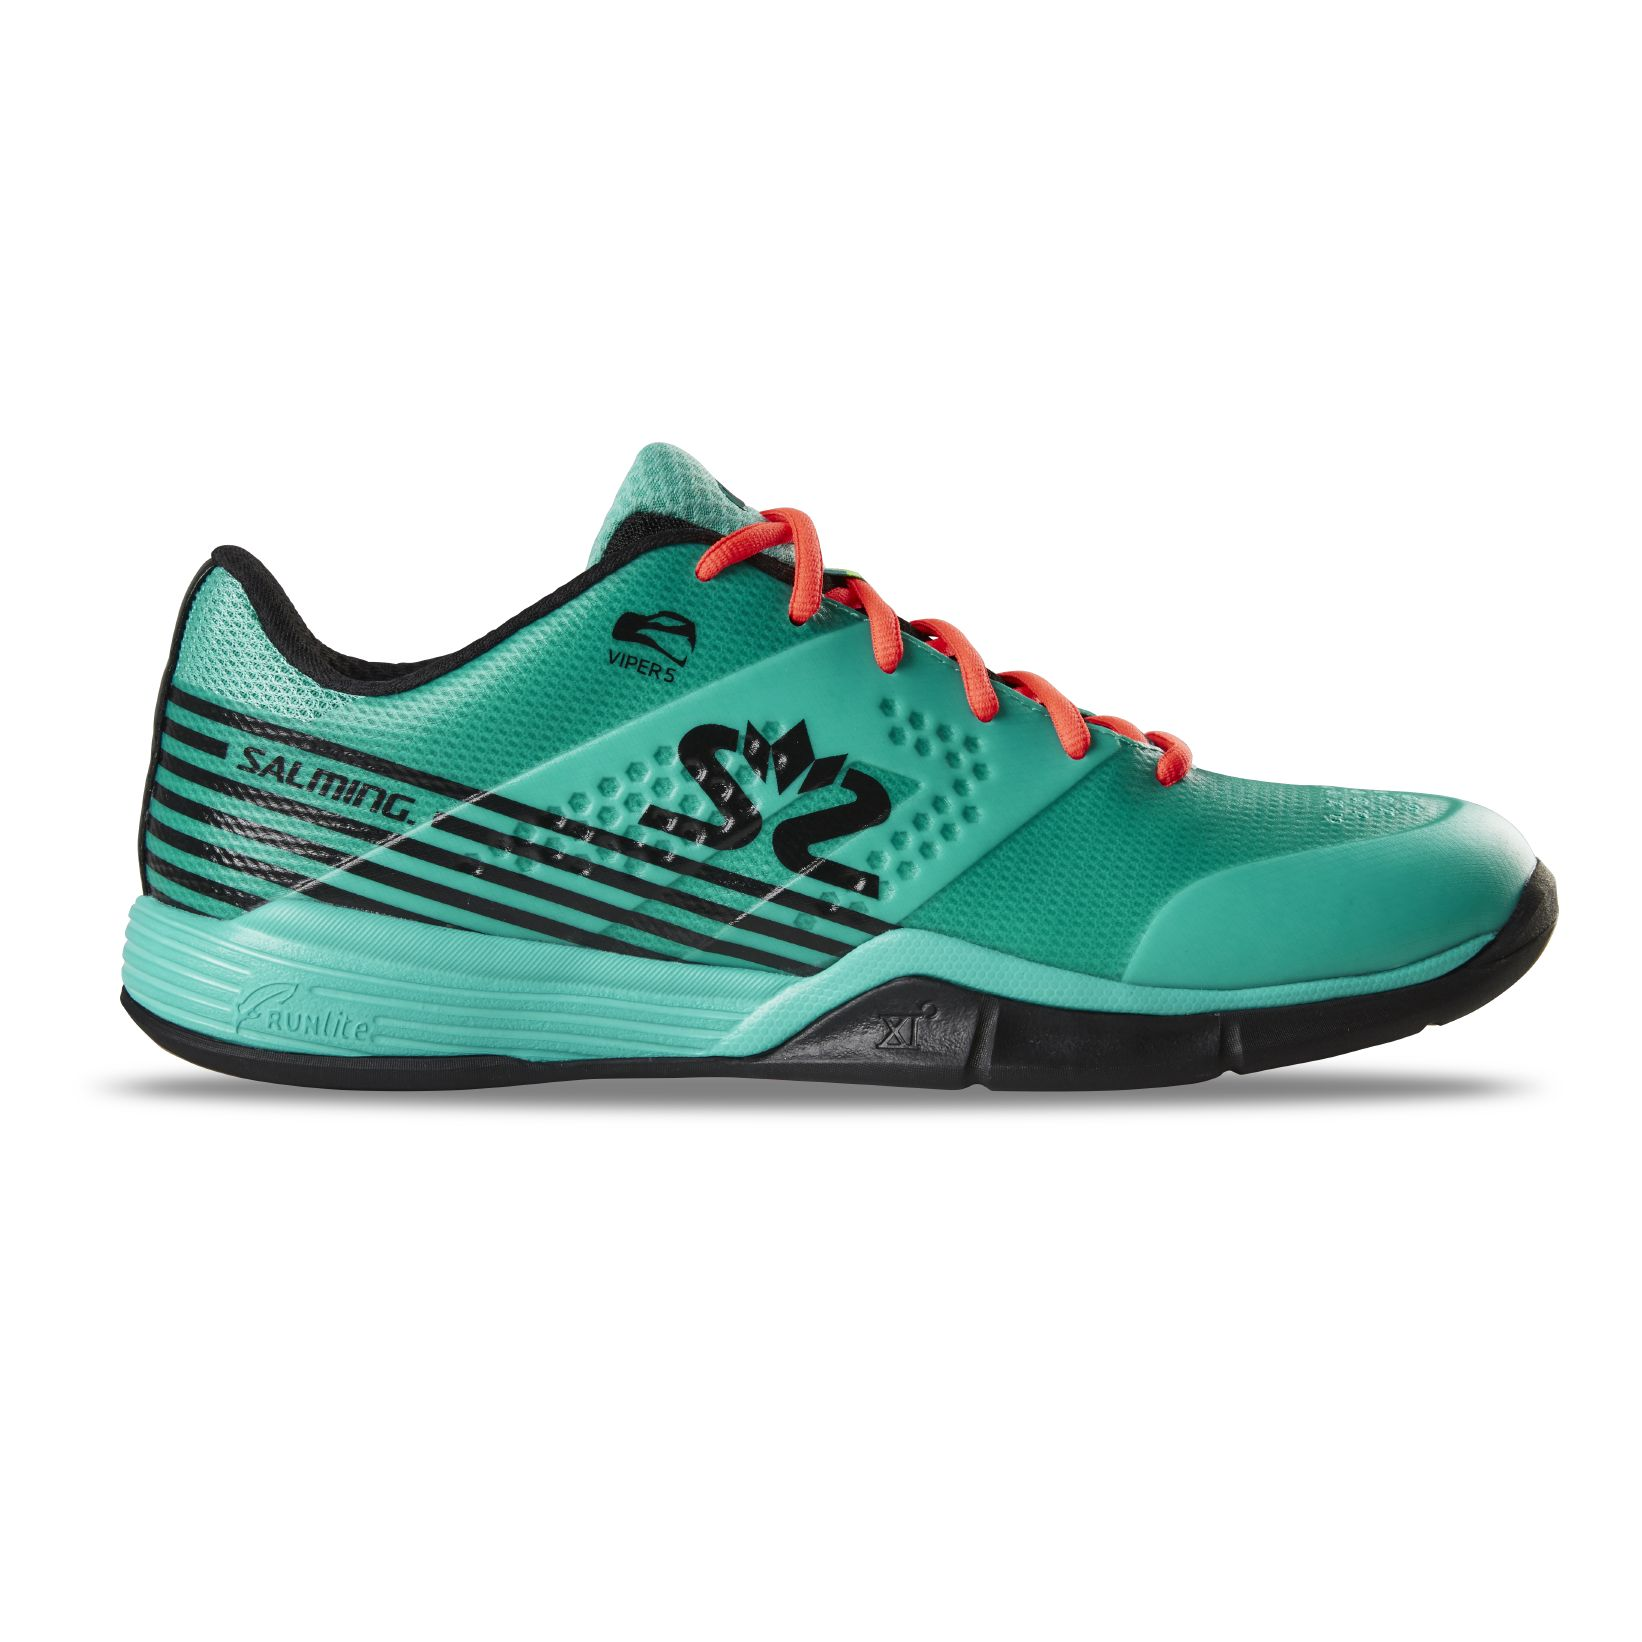 Salming Viper 5 Shoe Men Turquoise/Black 9 UK - 44 EUR - 28 cm